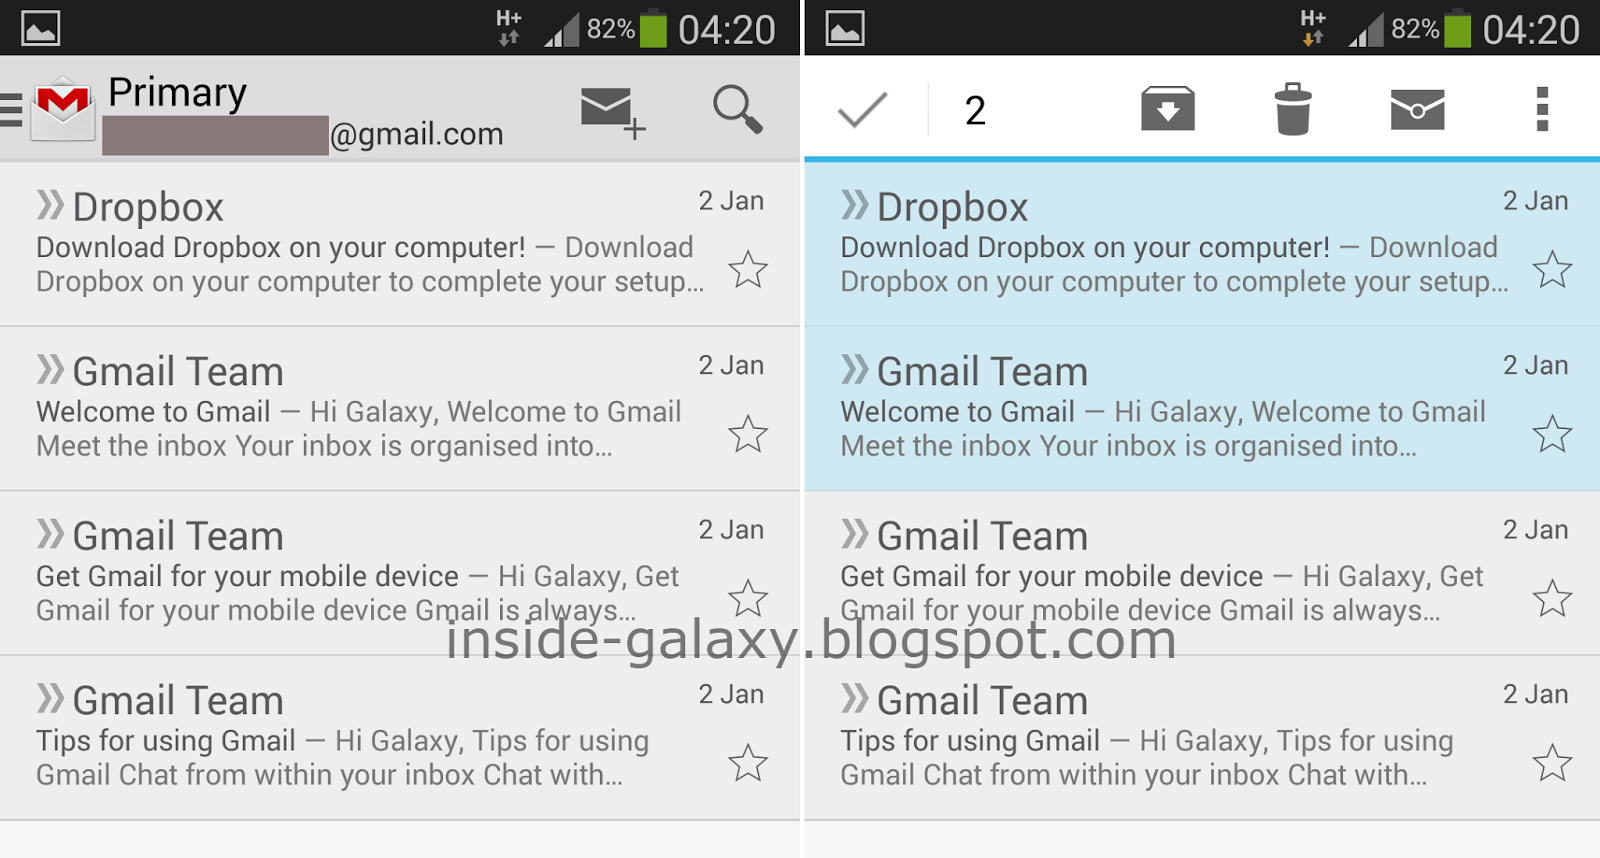 How to select multiple Gmail messages when sender image is turned off?